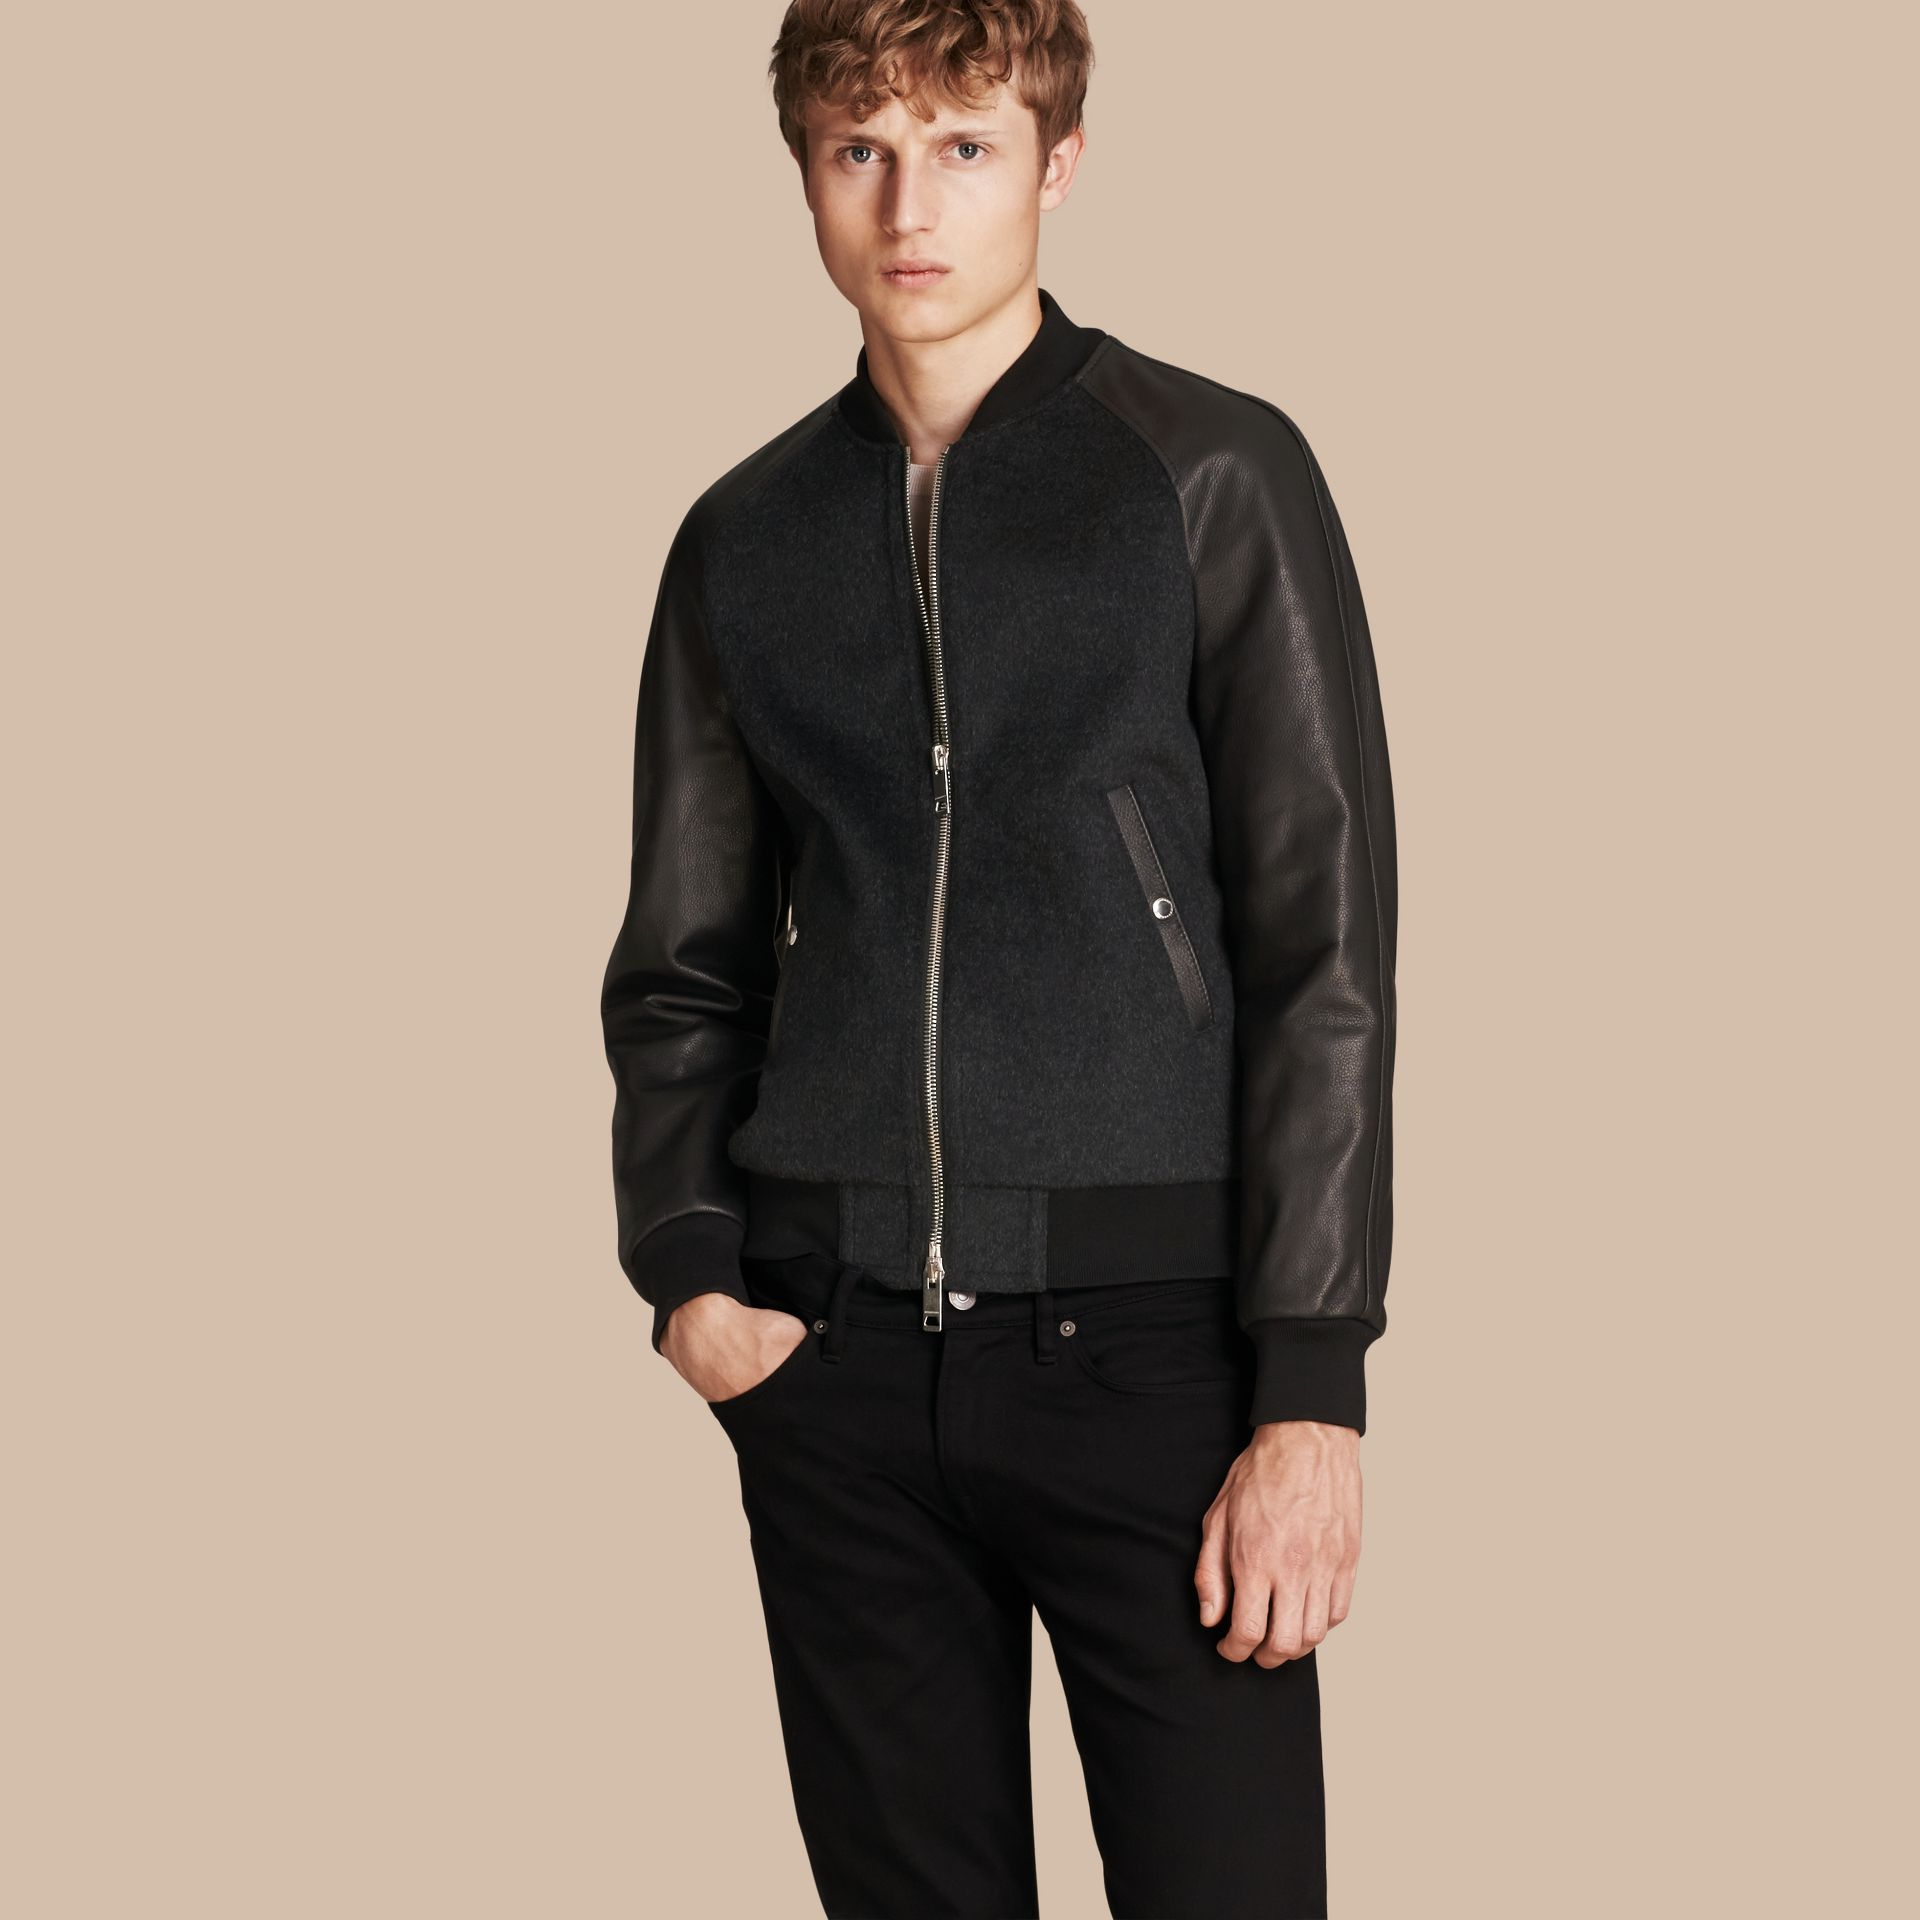 Dark grey melange Wool Cashmere Bomber Jacket with Leather Sleeves - gallery image 1